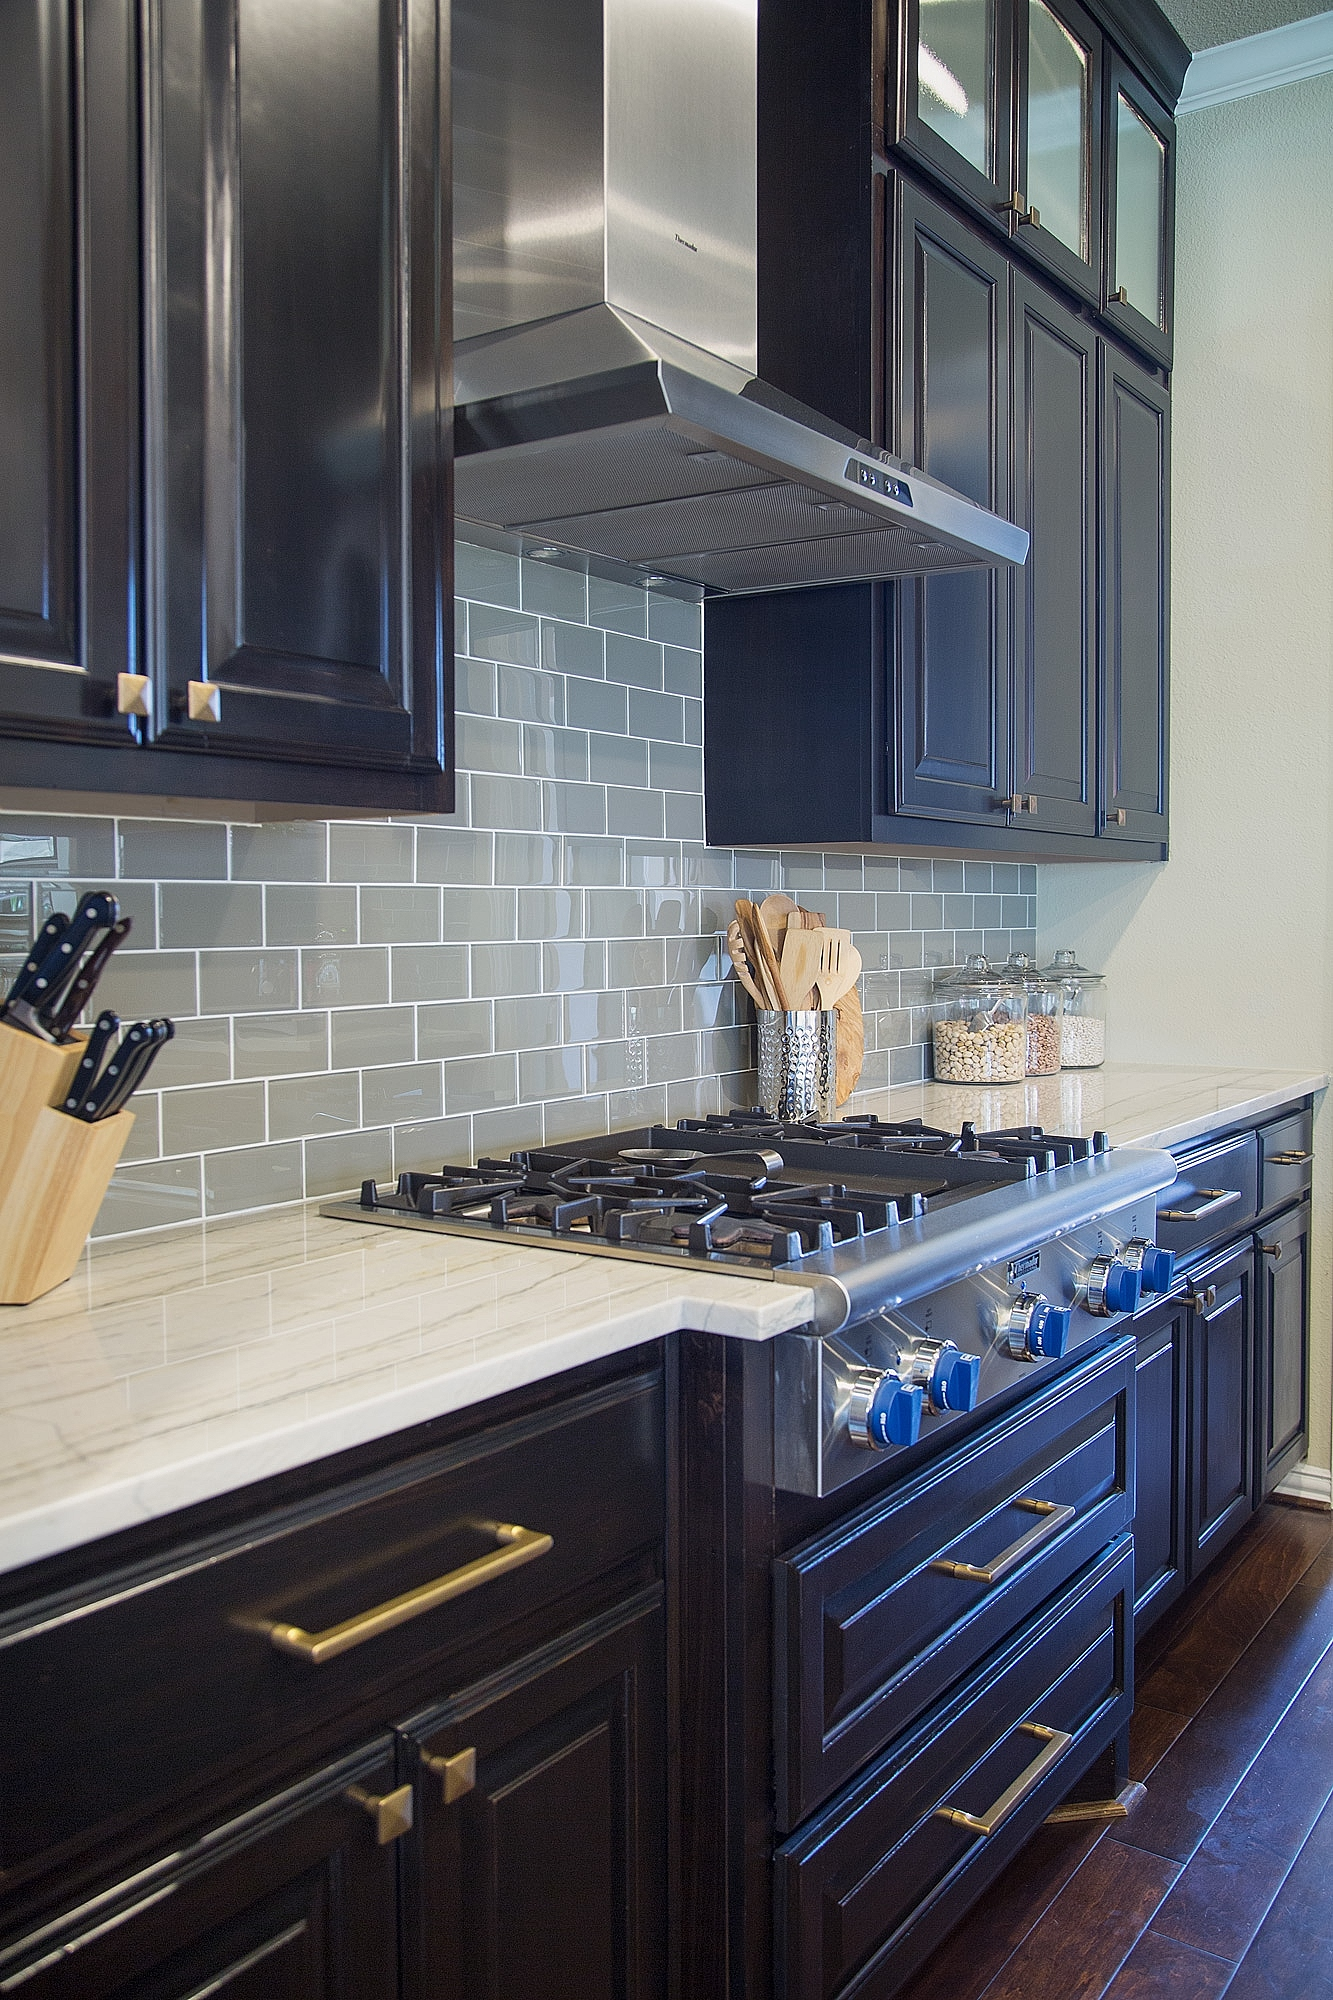 No side backsplash needed, tile dies on inside corner |  Kitchen Remodel,  Designer: Carla Aston, Photographer: Tori Aston #tilebacksplash #sidesplash